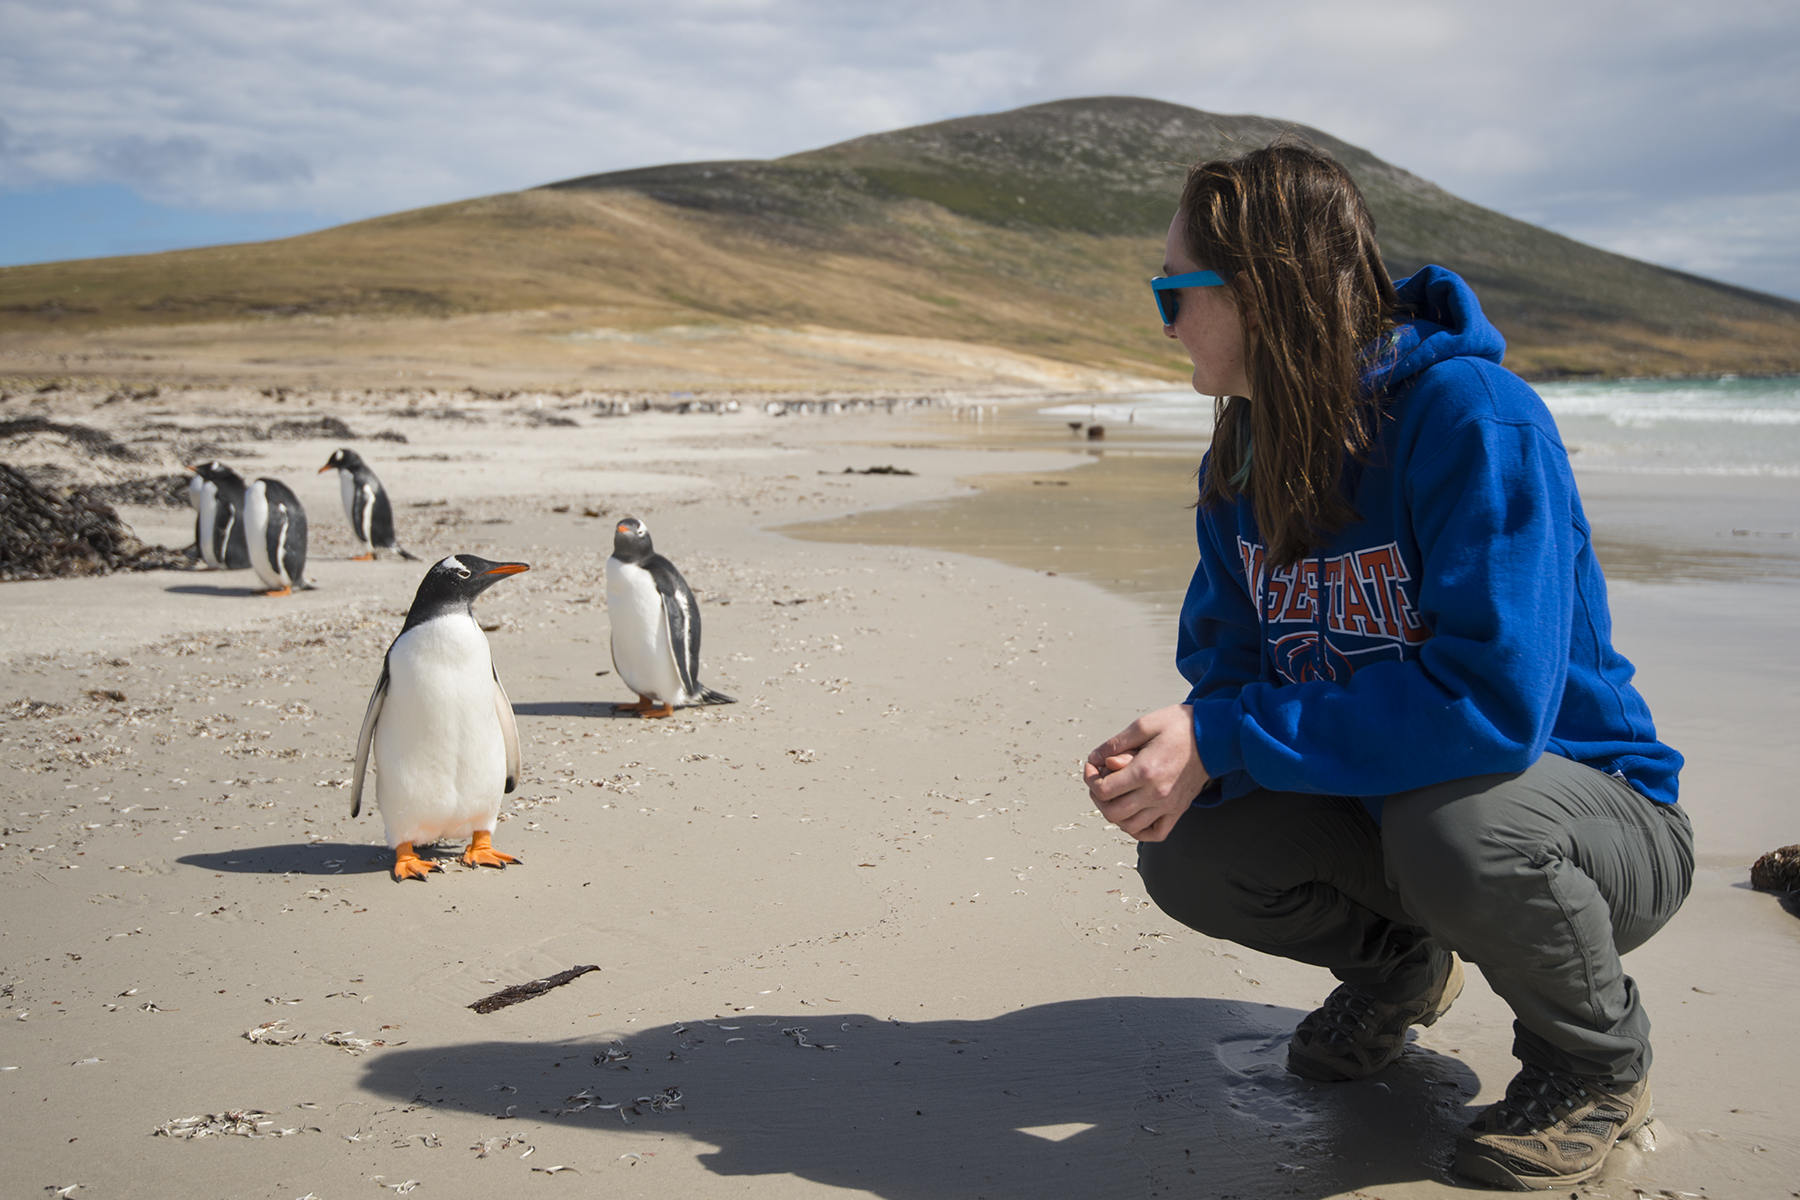 Lauren Young squatting on the beach observing penguins up close